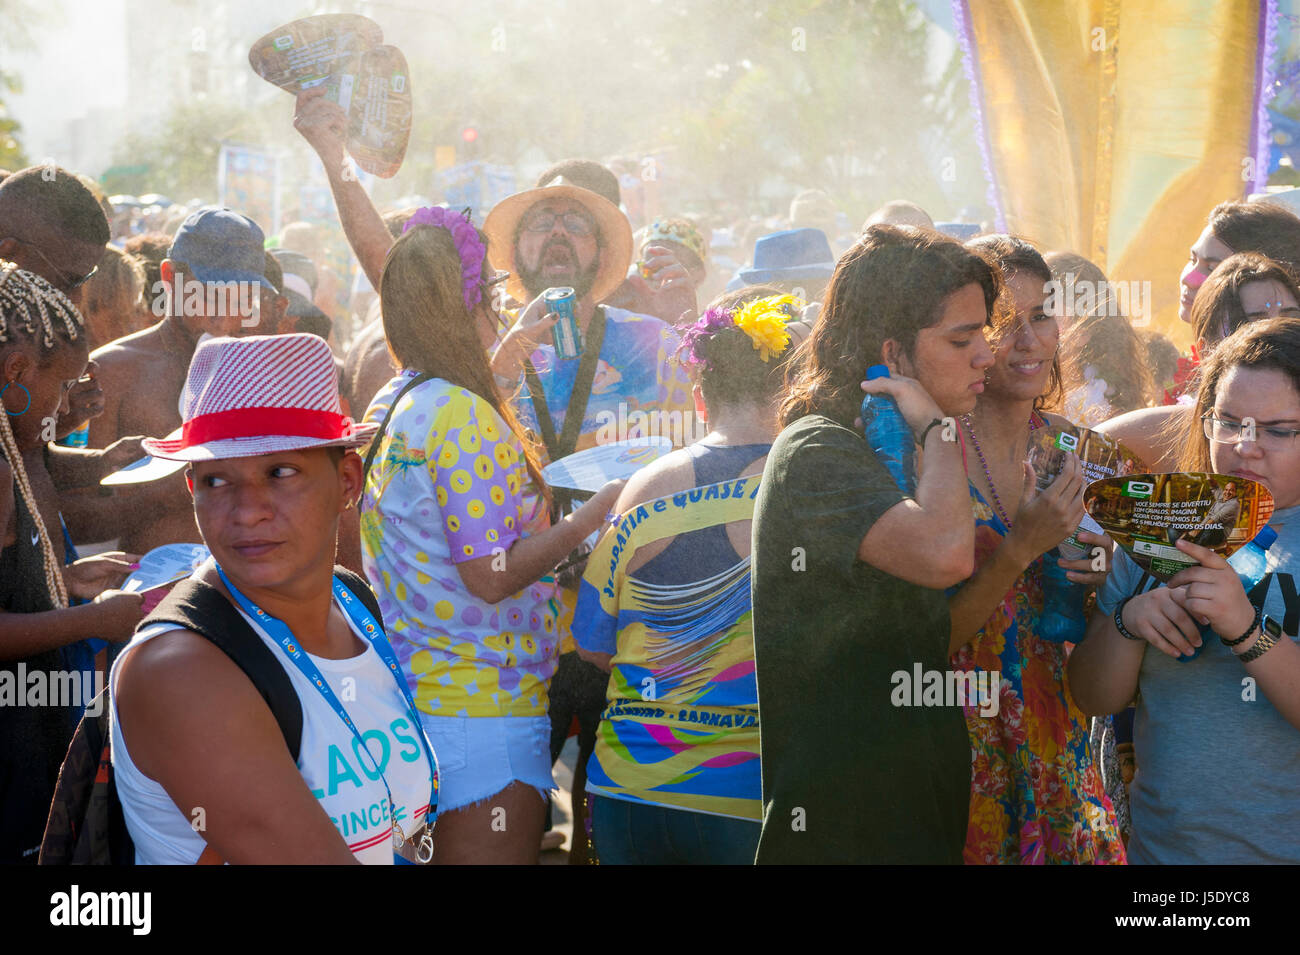 RIO DE JANEIRO - FEBRUARY 18, 2017: An afternoon carnival street party in Ipanema draws crowds of young Brazilians - Stock Image